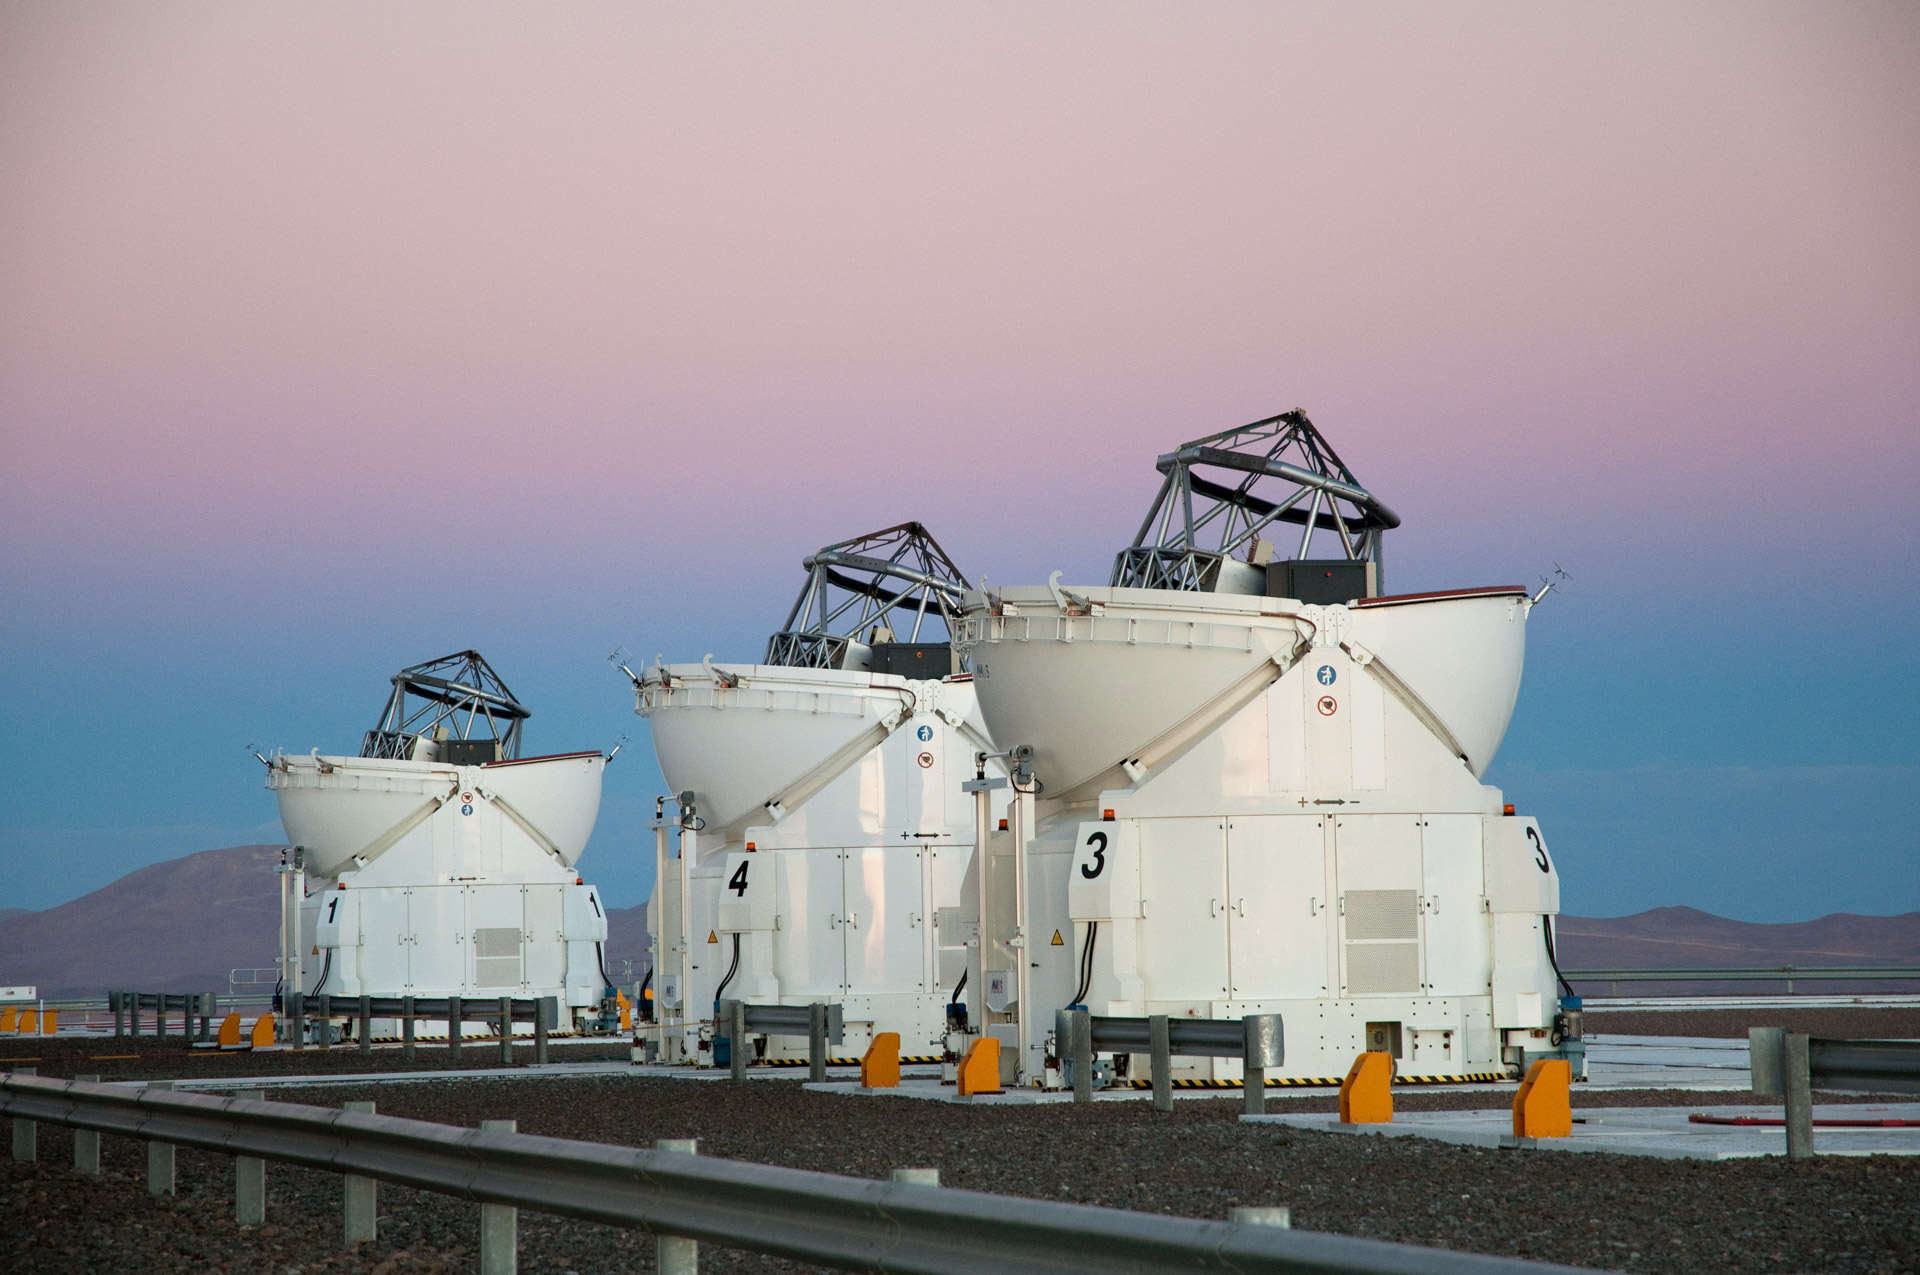 The ESO Very Large Telescope Interferometer (VLTI)